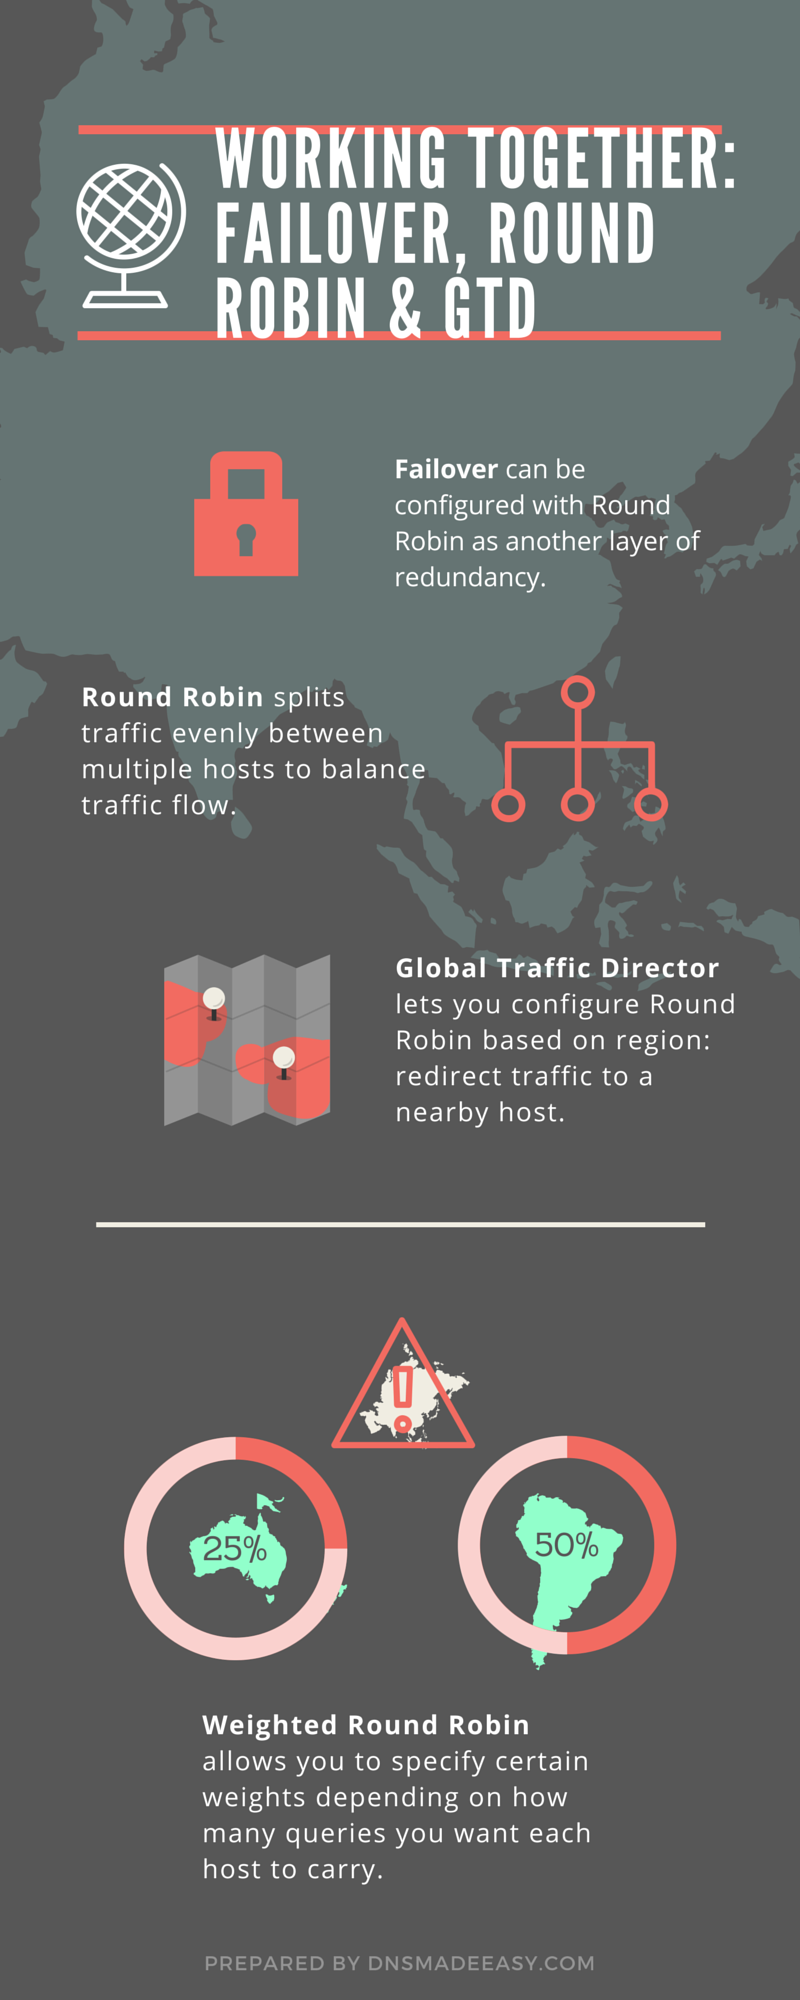 increase redundancy with Failover Infographic